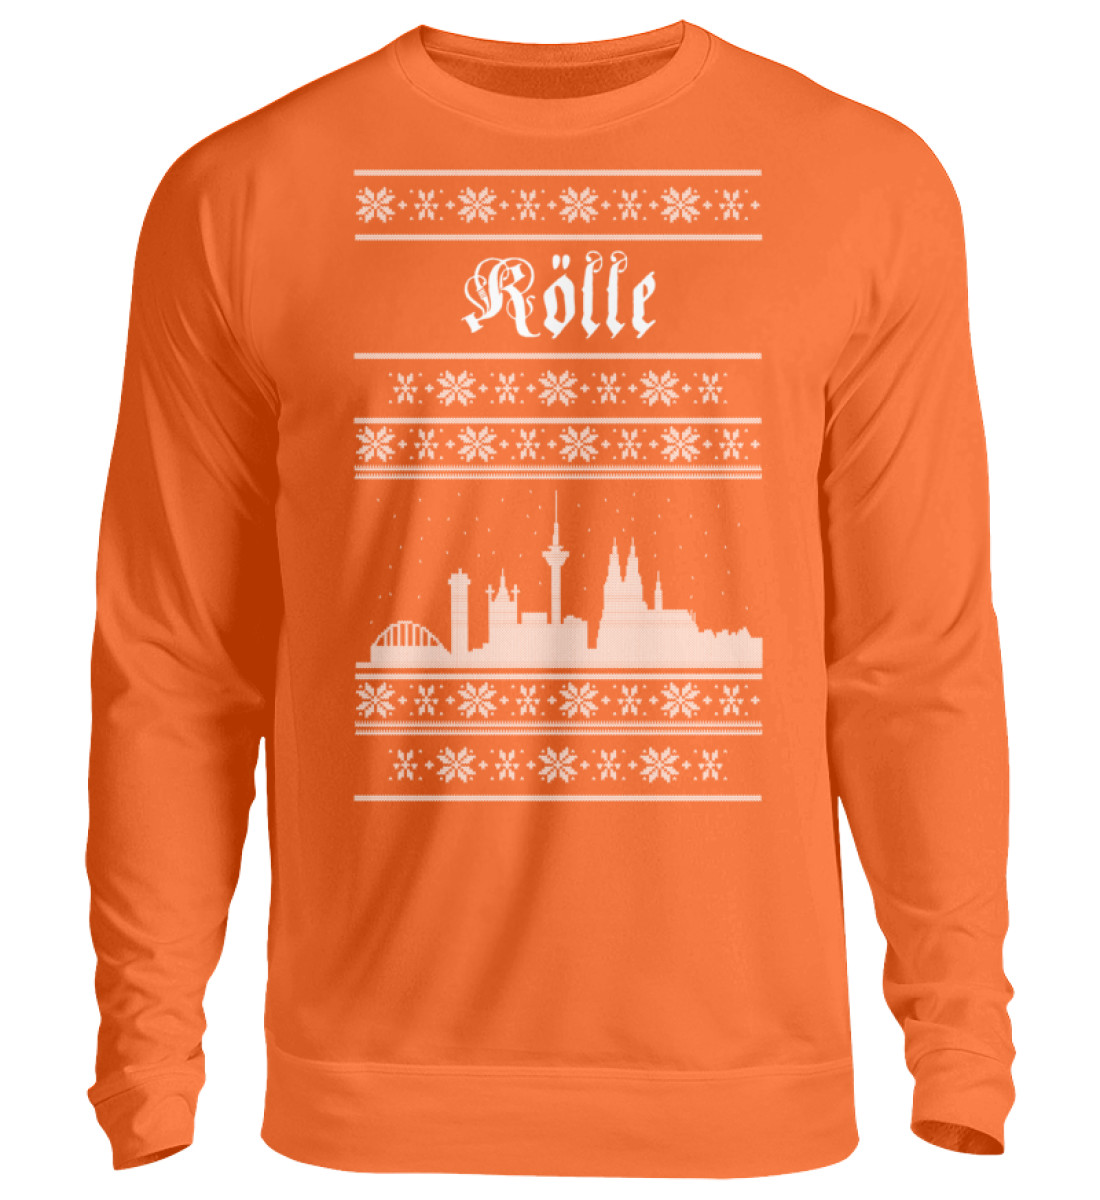 Kölle Ugly Christmas Sweater - Unisex Pullover-1692